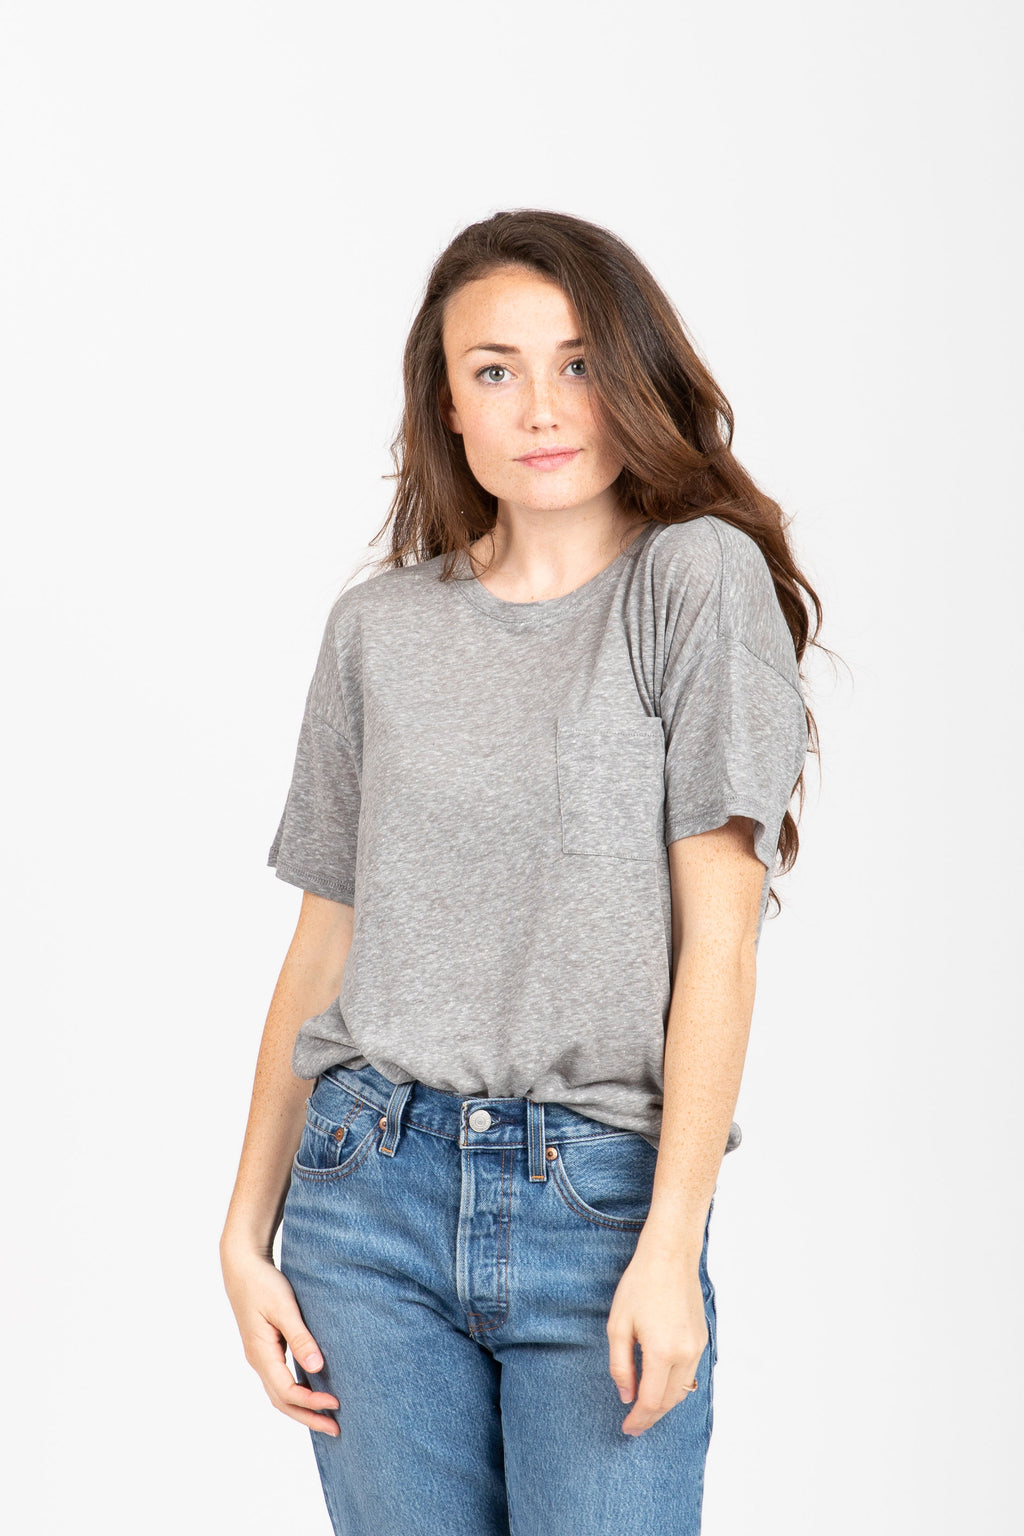 The Denison Pocket Tee in Heather Grey